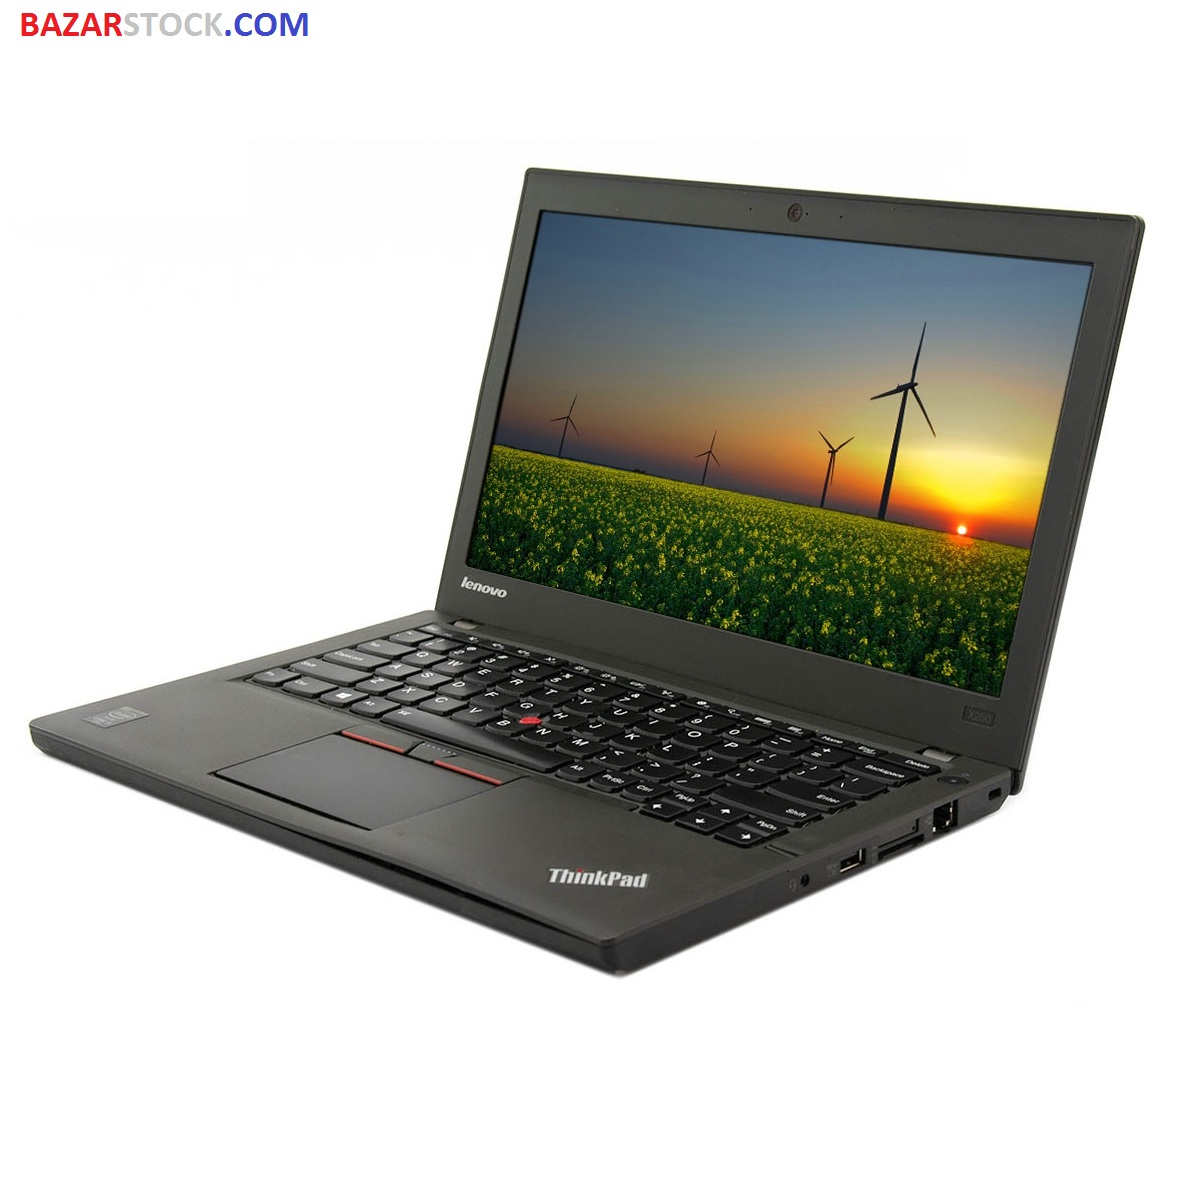 لپ تاپ لنوو تینکپد Lenovo Thinkpad X250